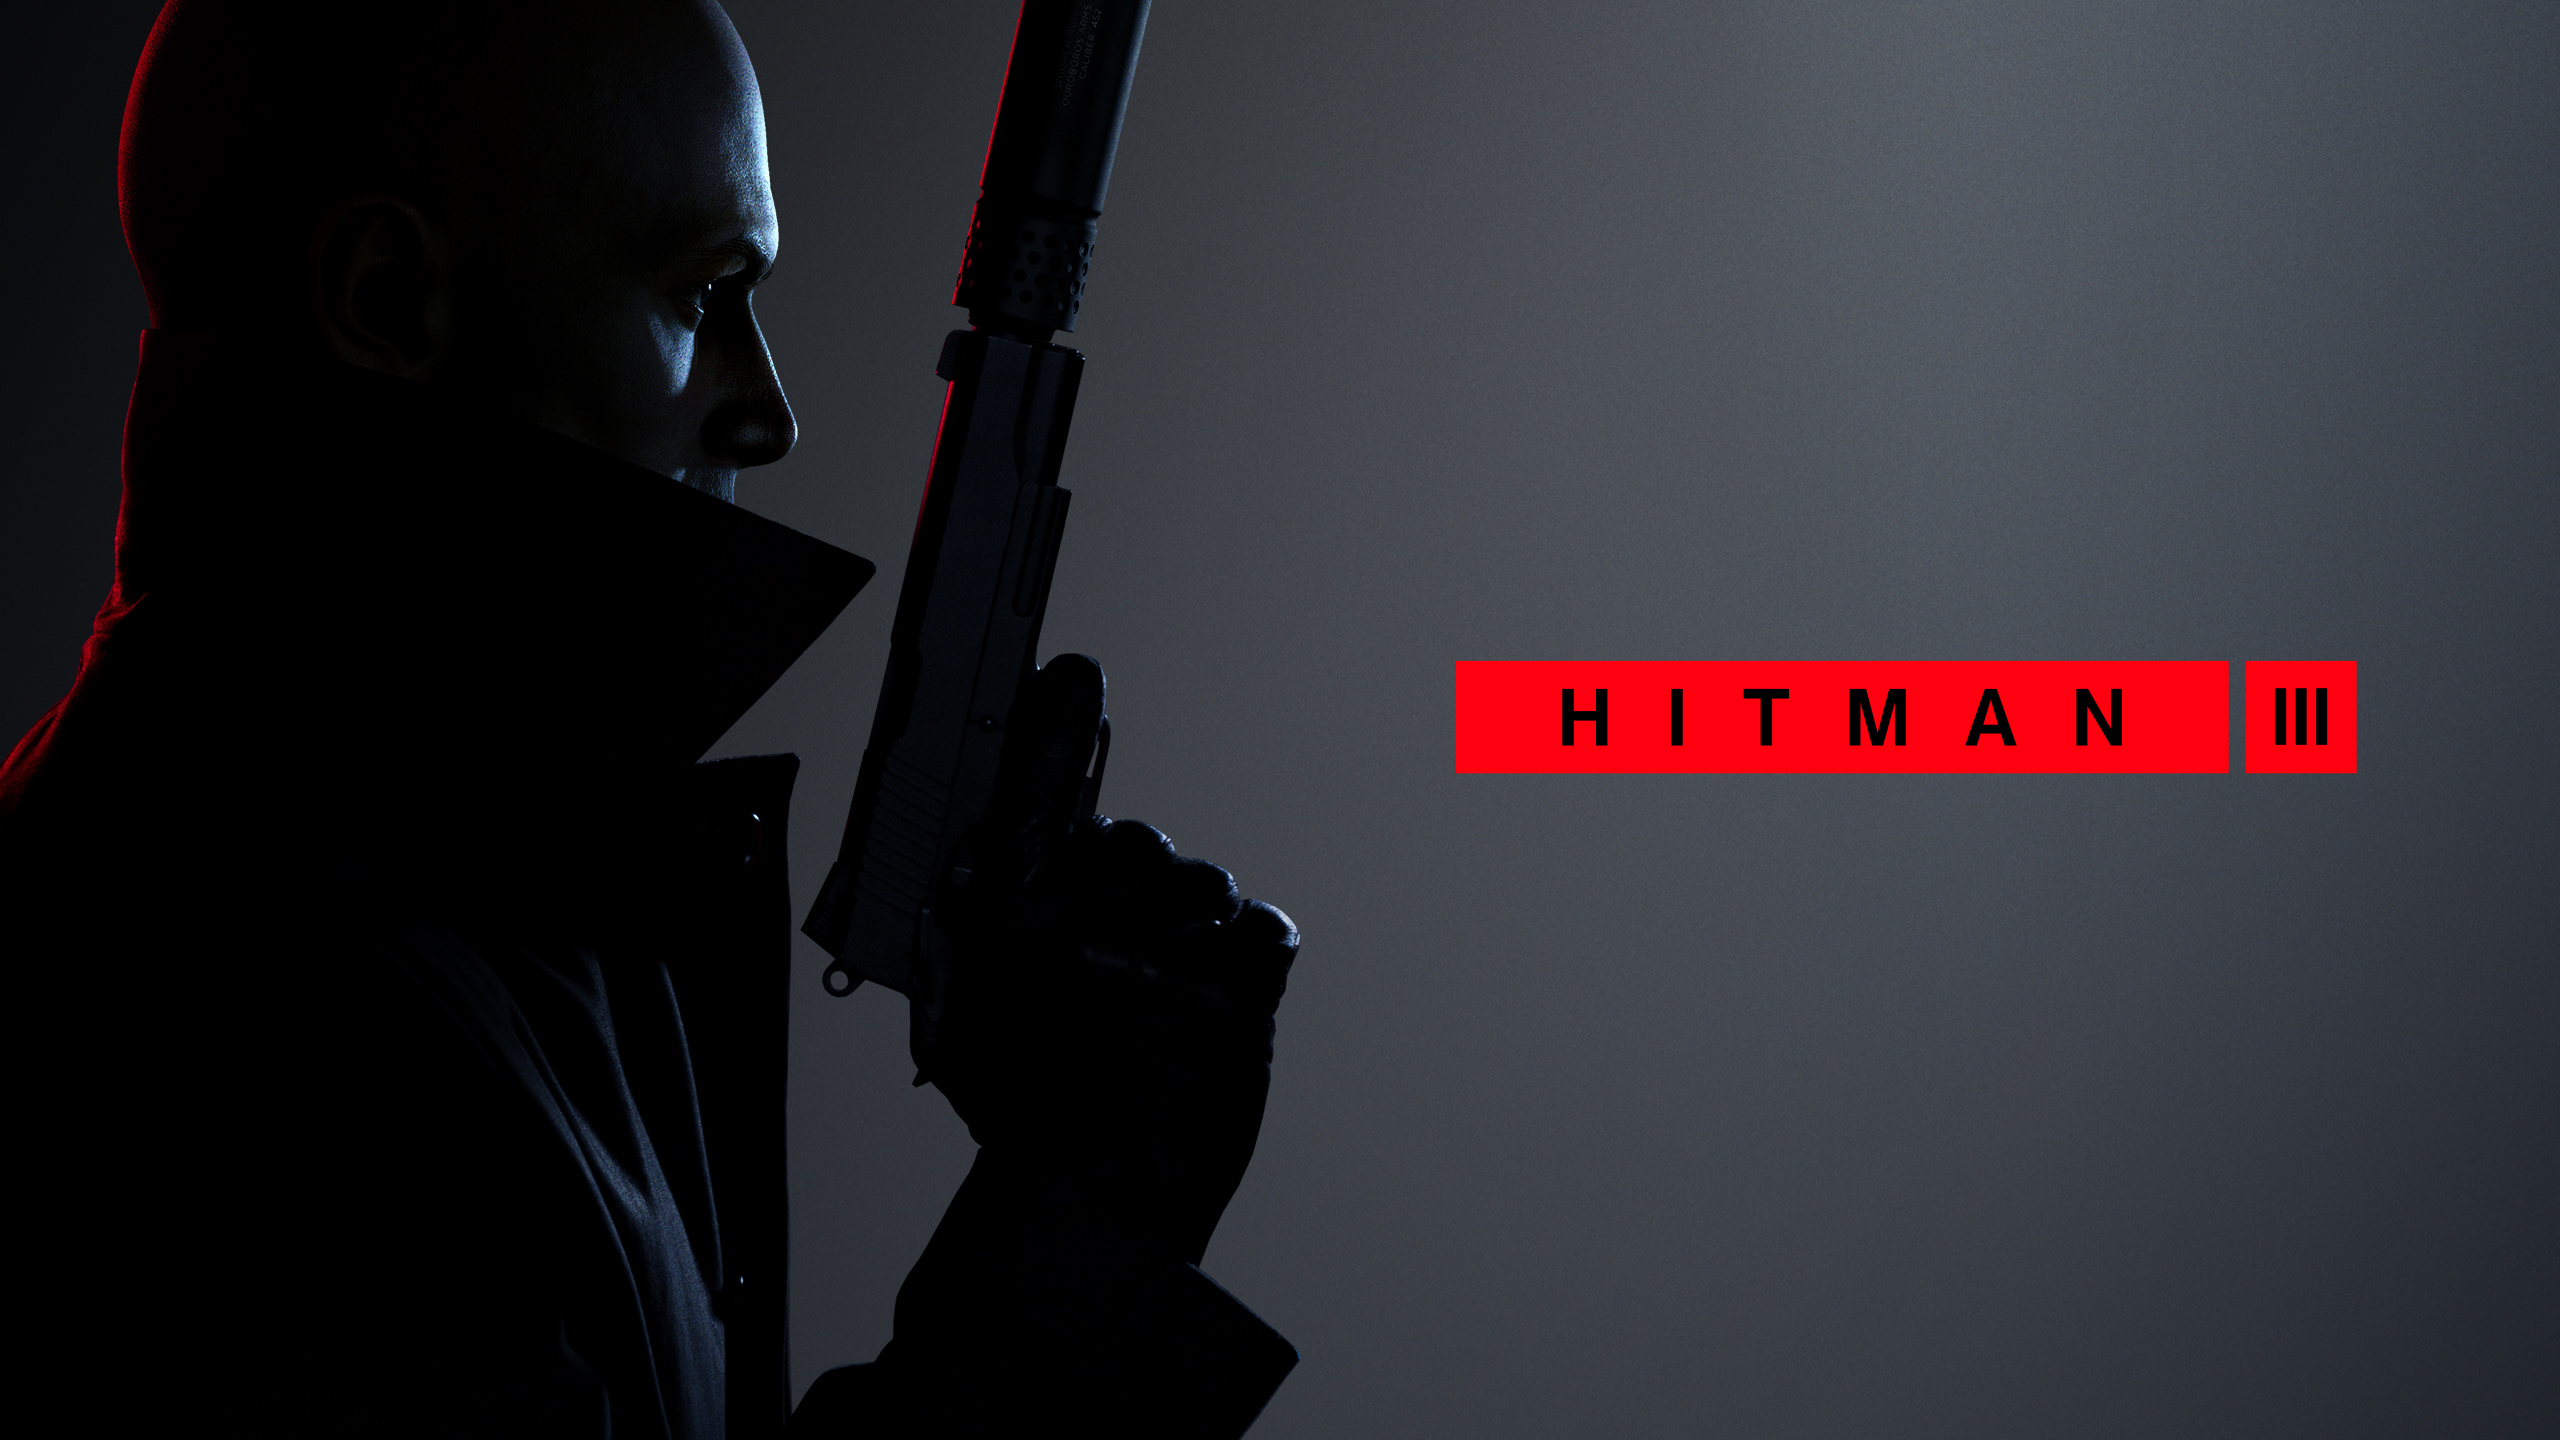 HITMAN 3   Download and Buy Today - Epic Games Store